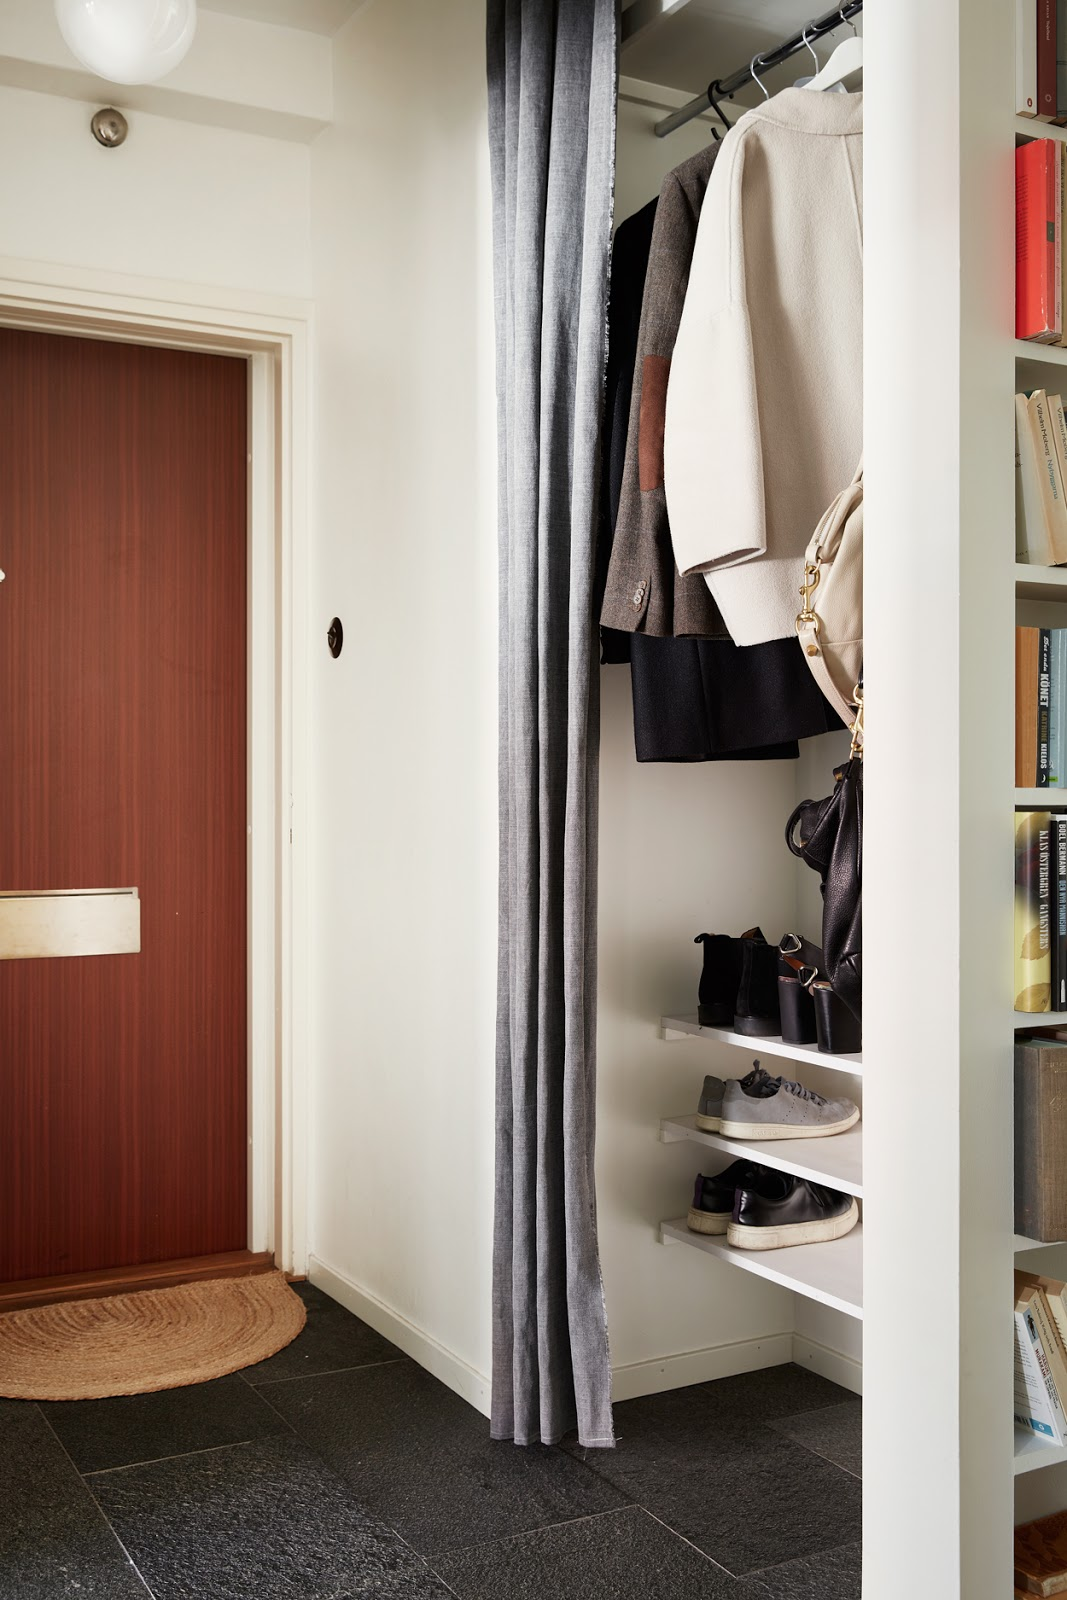 Tende Al Posto Delle Ante.Intelligent Solutions For Your Home Curtains Power Il Potere